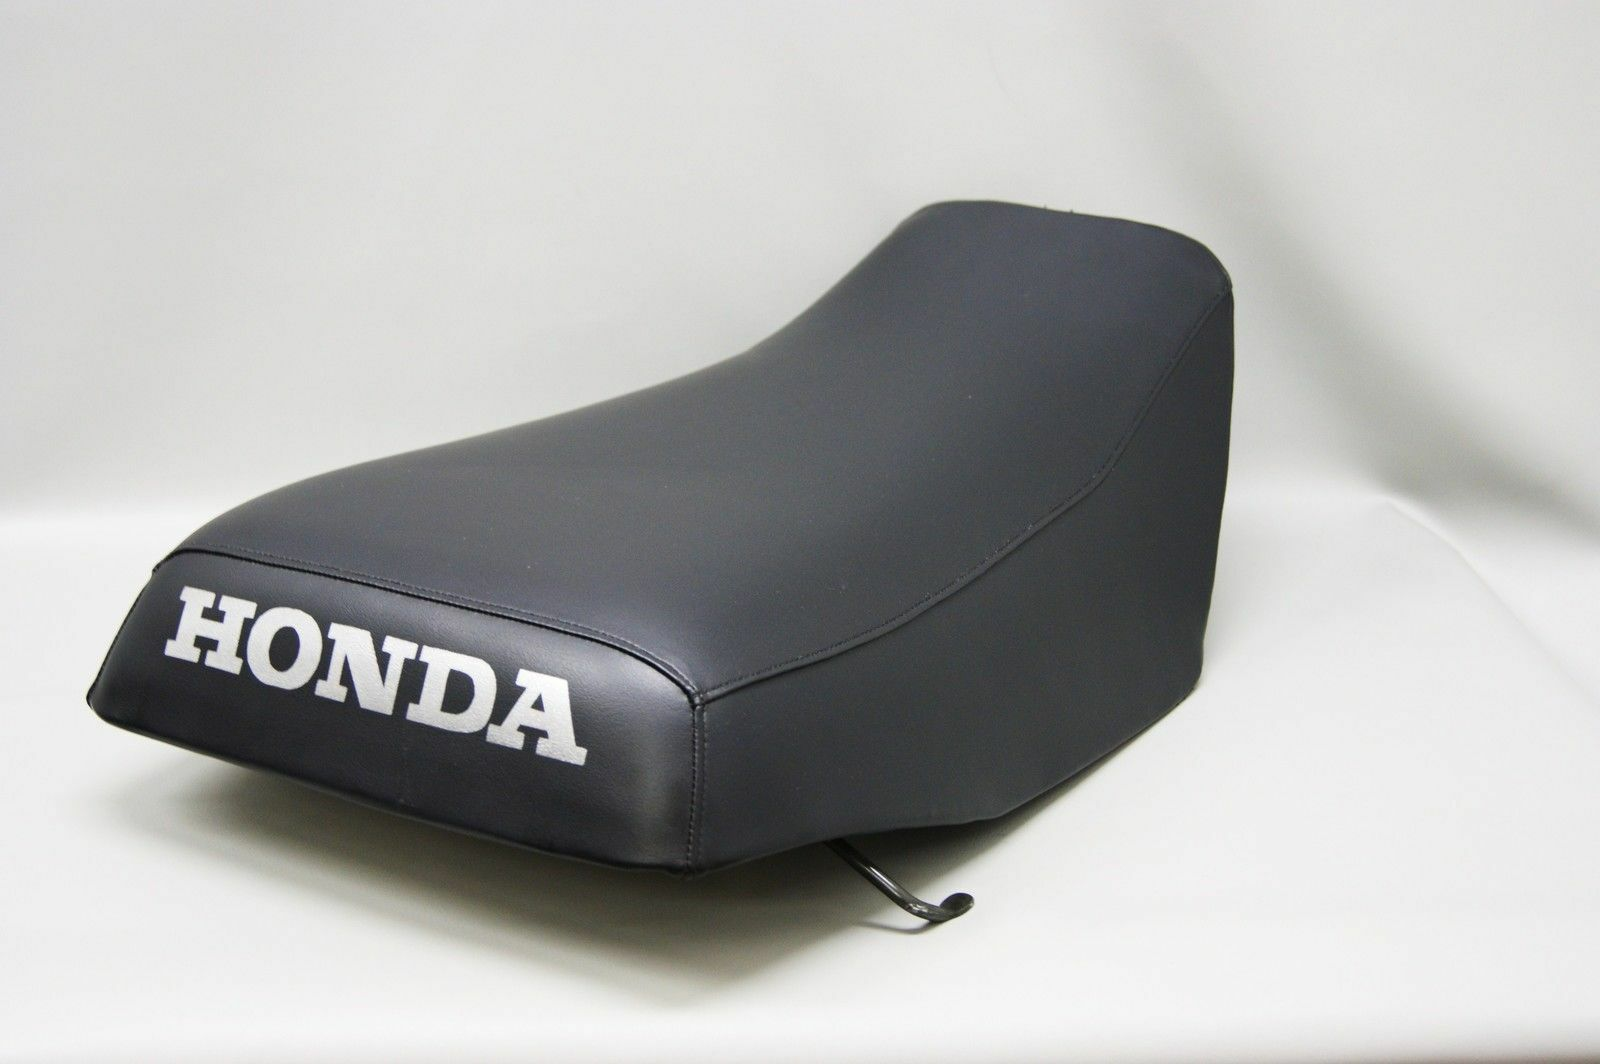 Primary image for HONDA TRX450 FOREMAN  Seat Cover 1998-2004  BLACK, 2-tone and 25 Colors (ST)